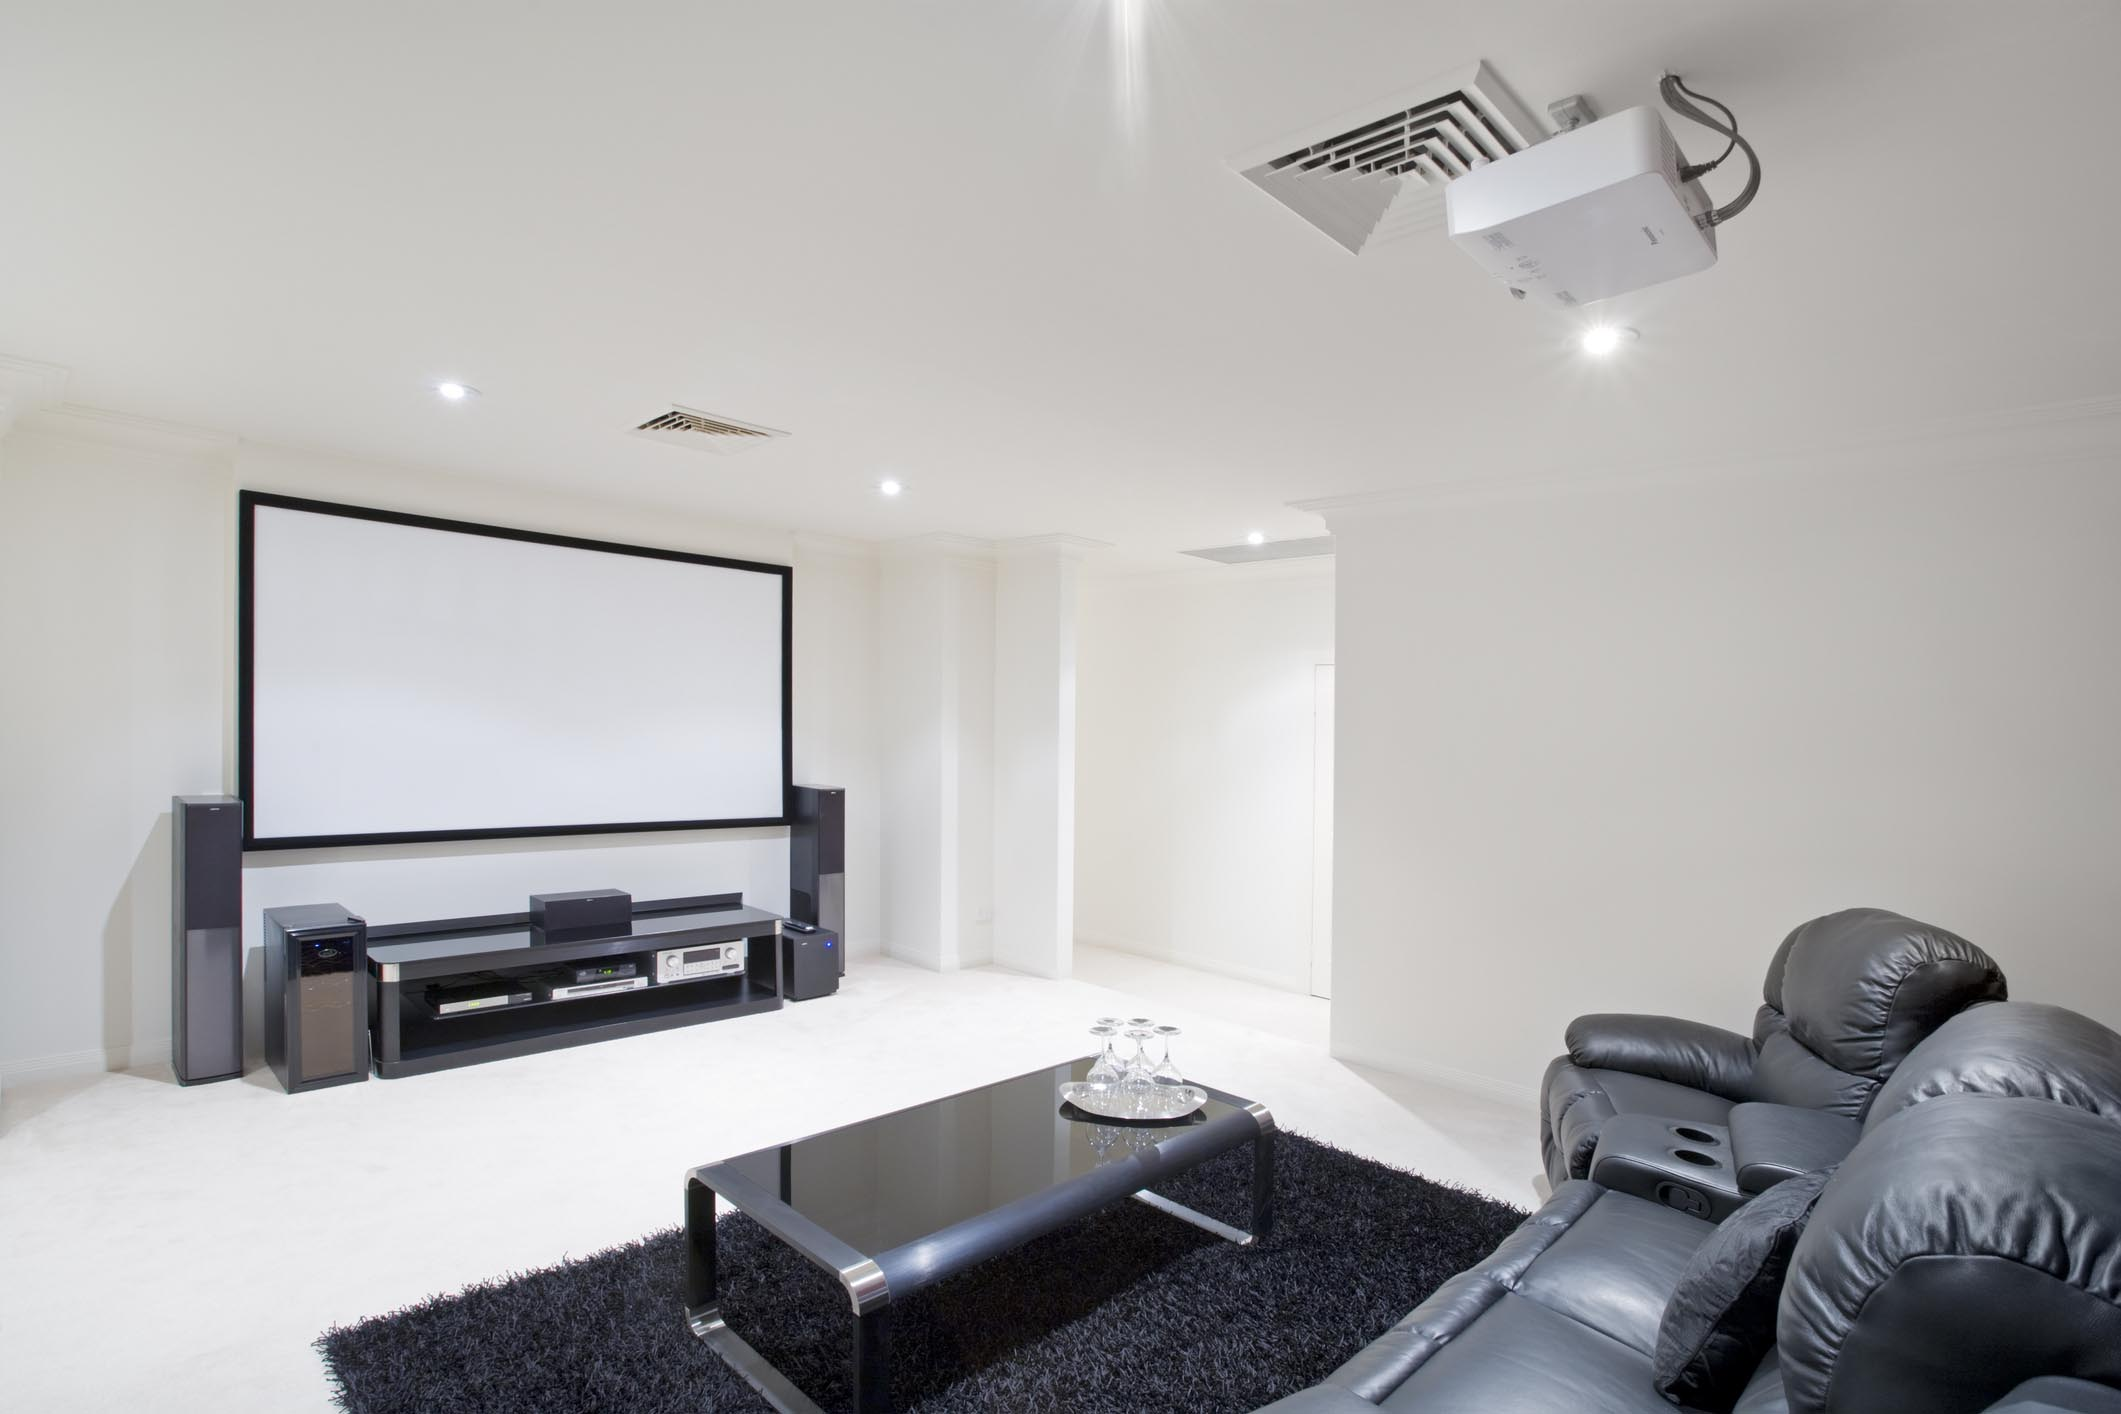 projector gallery master av services. Black Bedroom Furniture Sets. Home Design Ideas